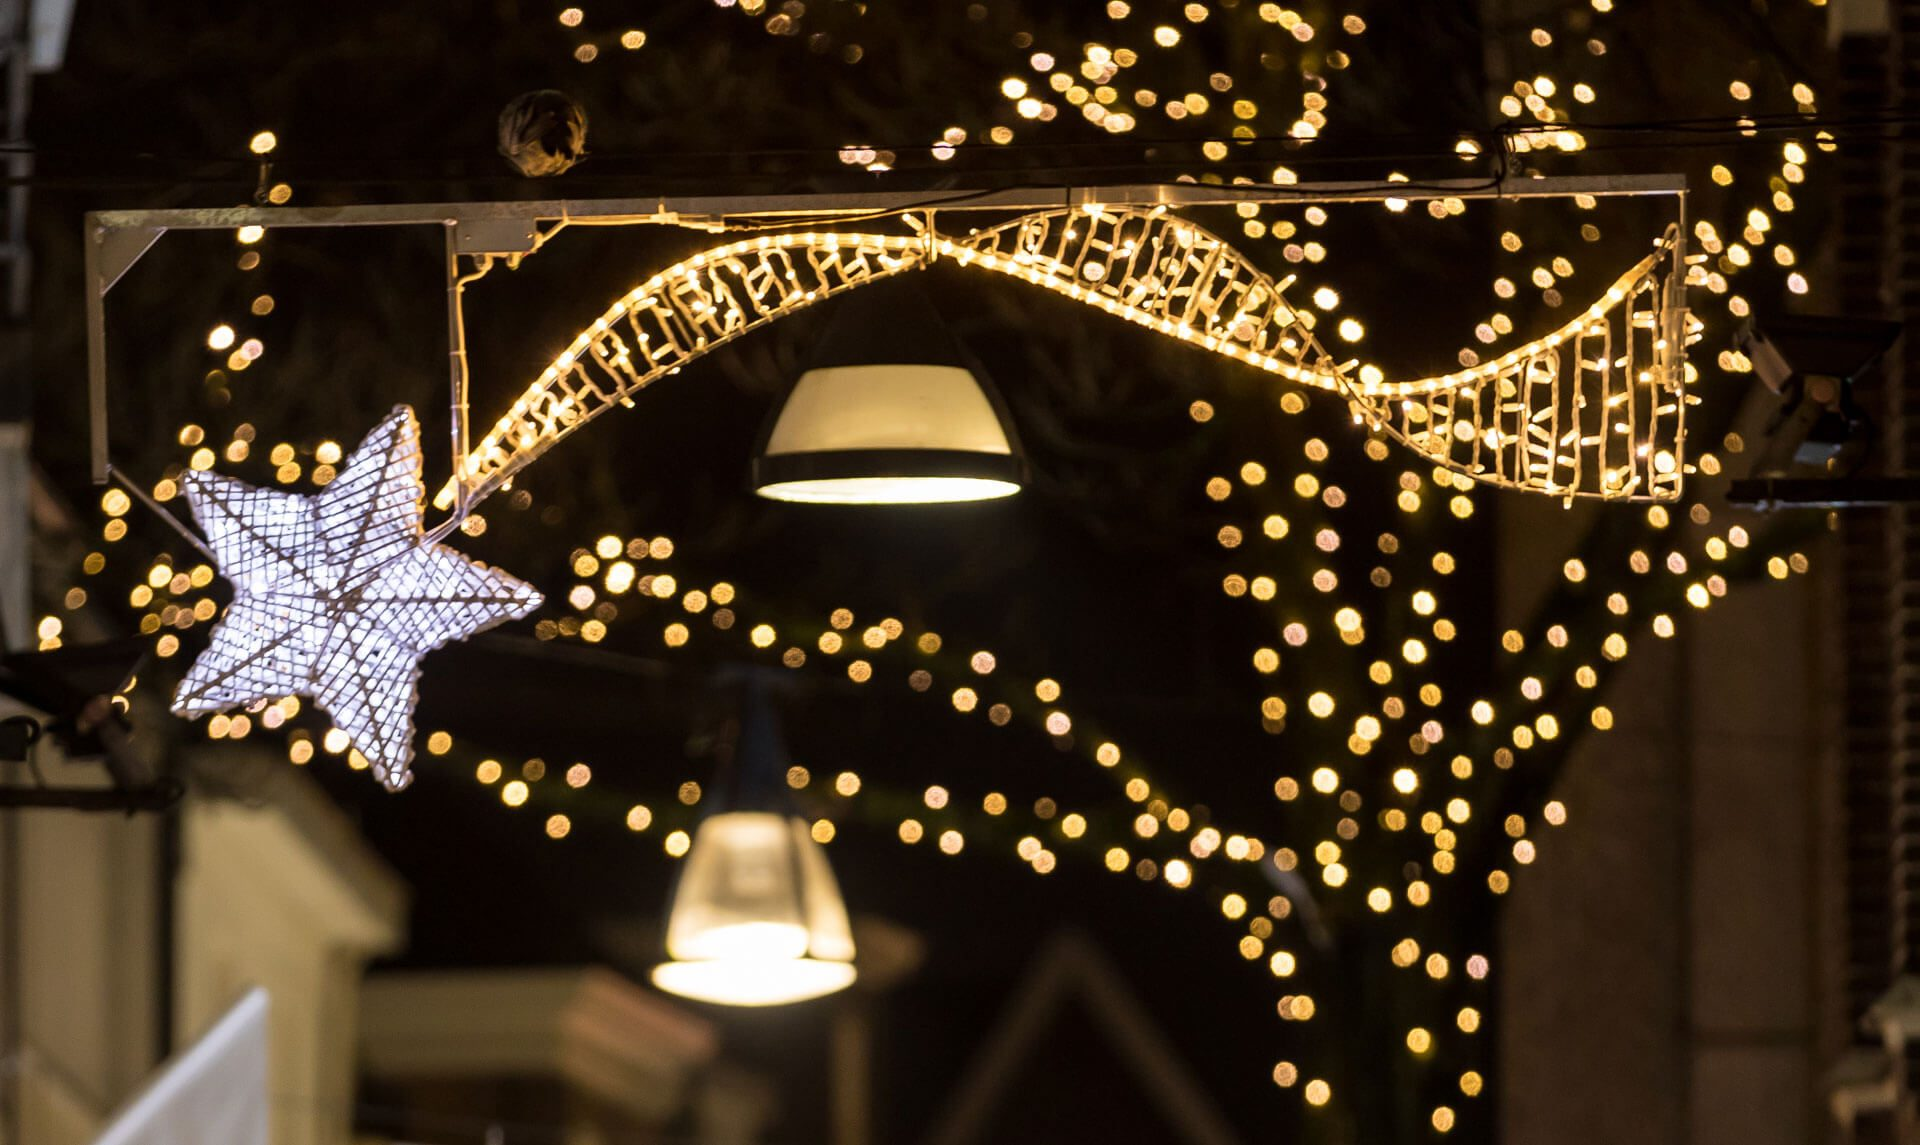 Zwolle's lights will be back for the 2018 festive season.